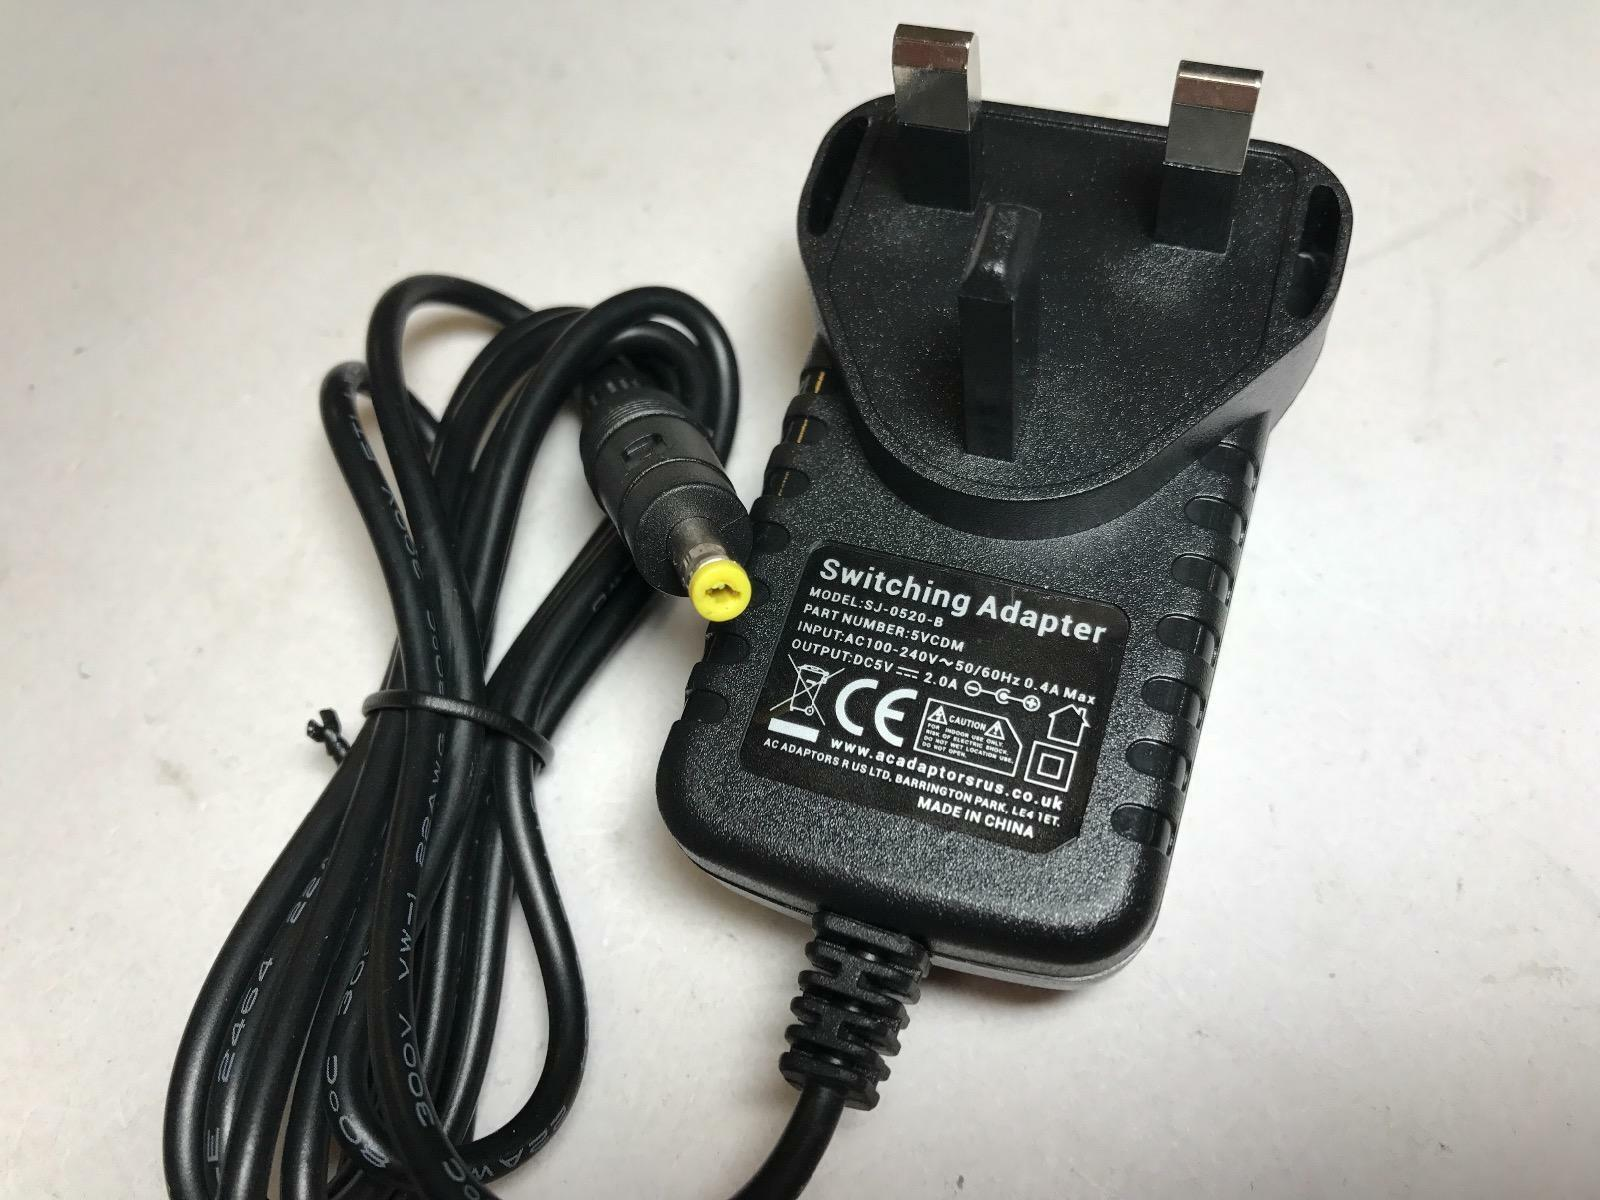 5V 1.25A 1250mA Mains AC-DC Switching Adapter fits DC601 for Bush Freeview Box